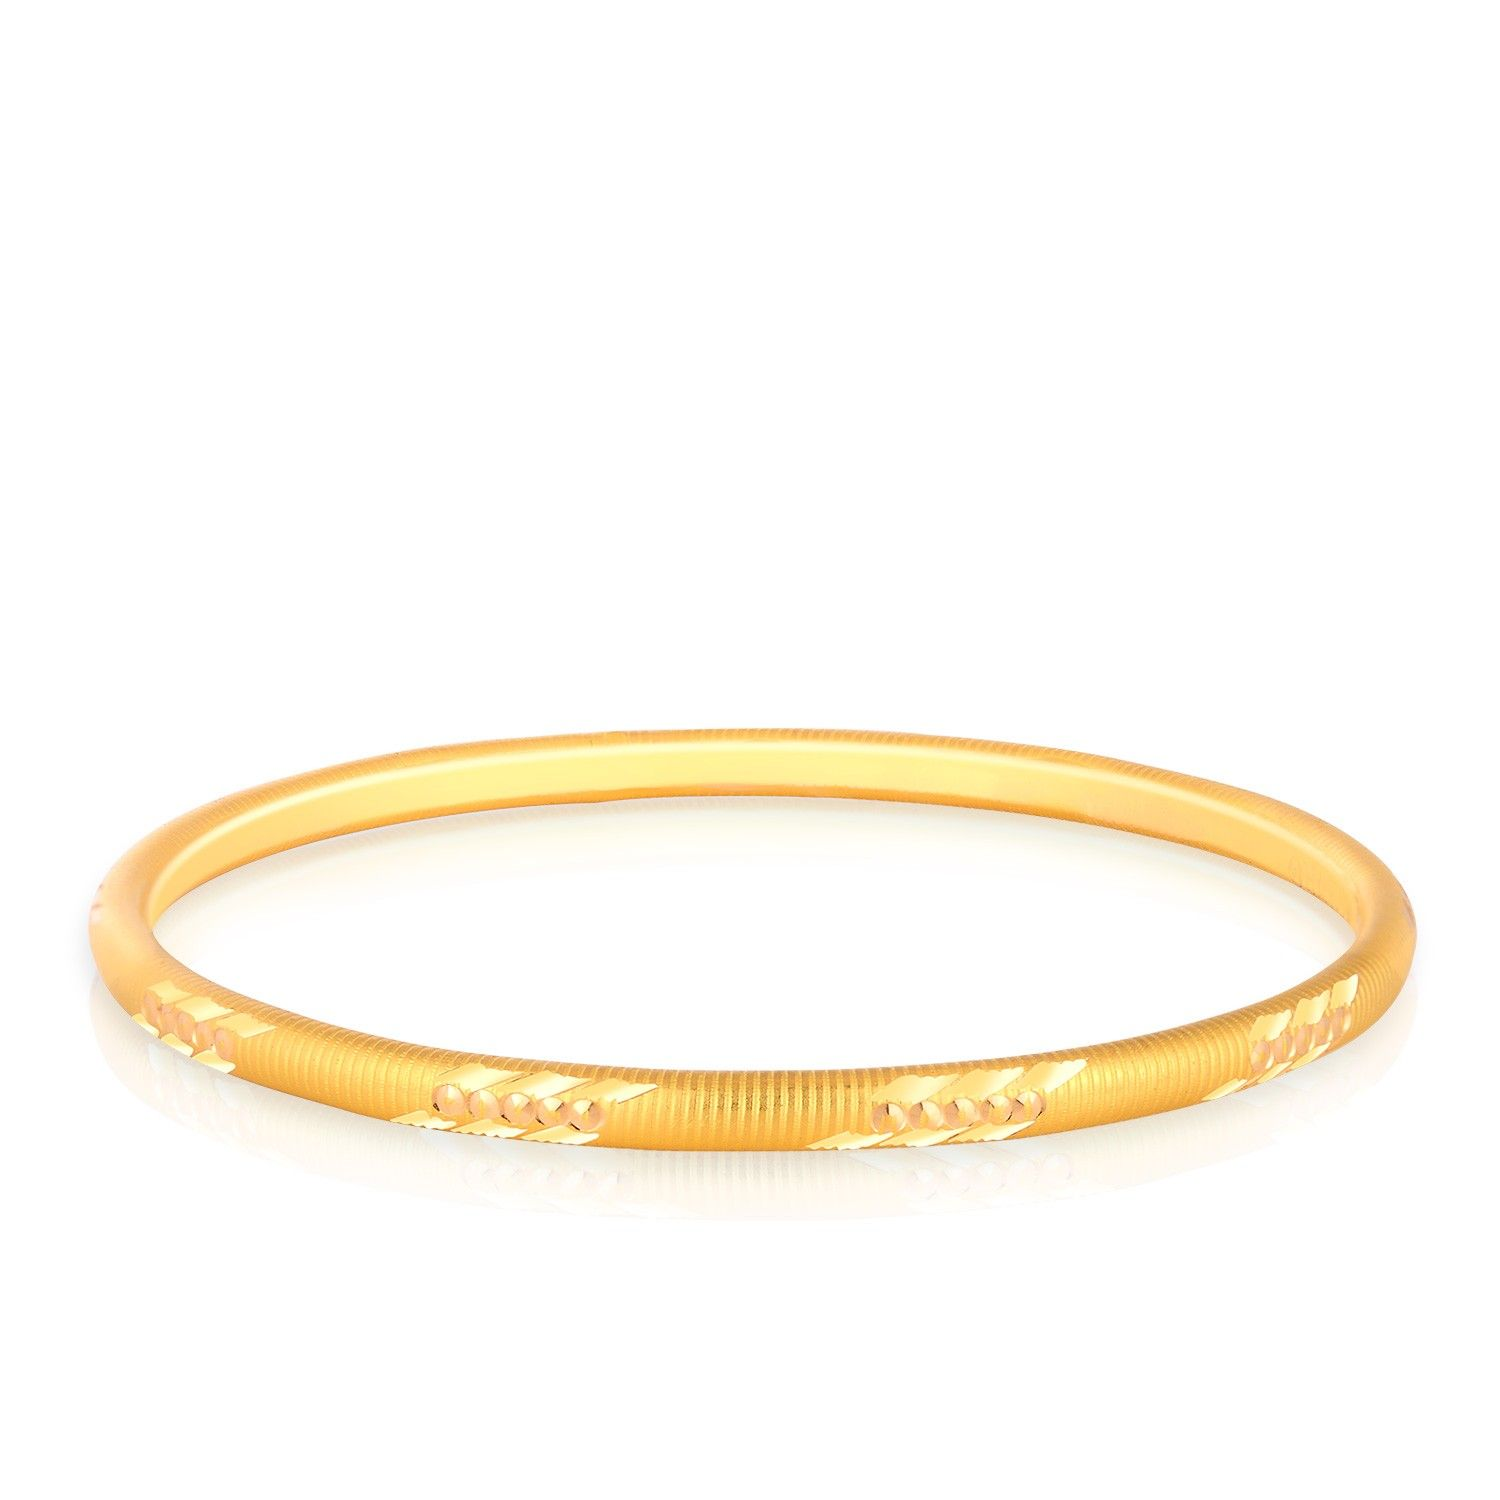 Malabar Gold | Jewelry | Pinterest | Gold, Bangle and Gold ...